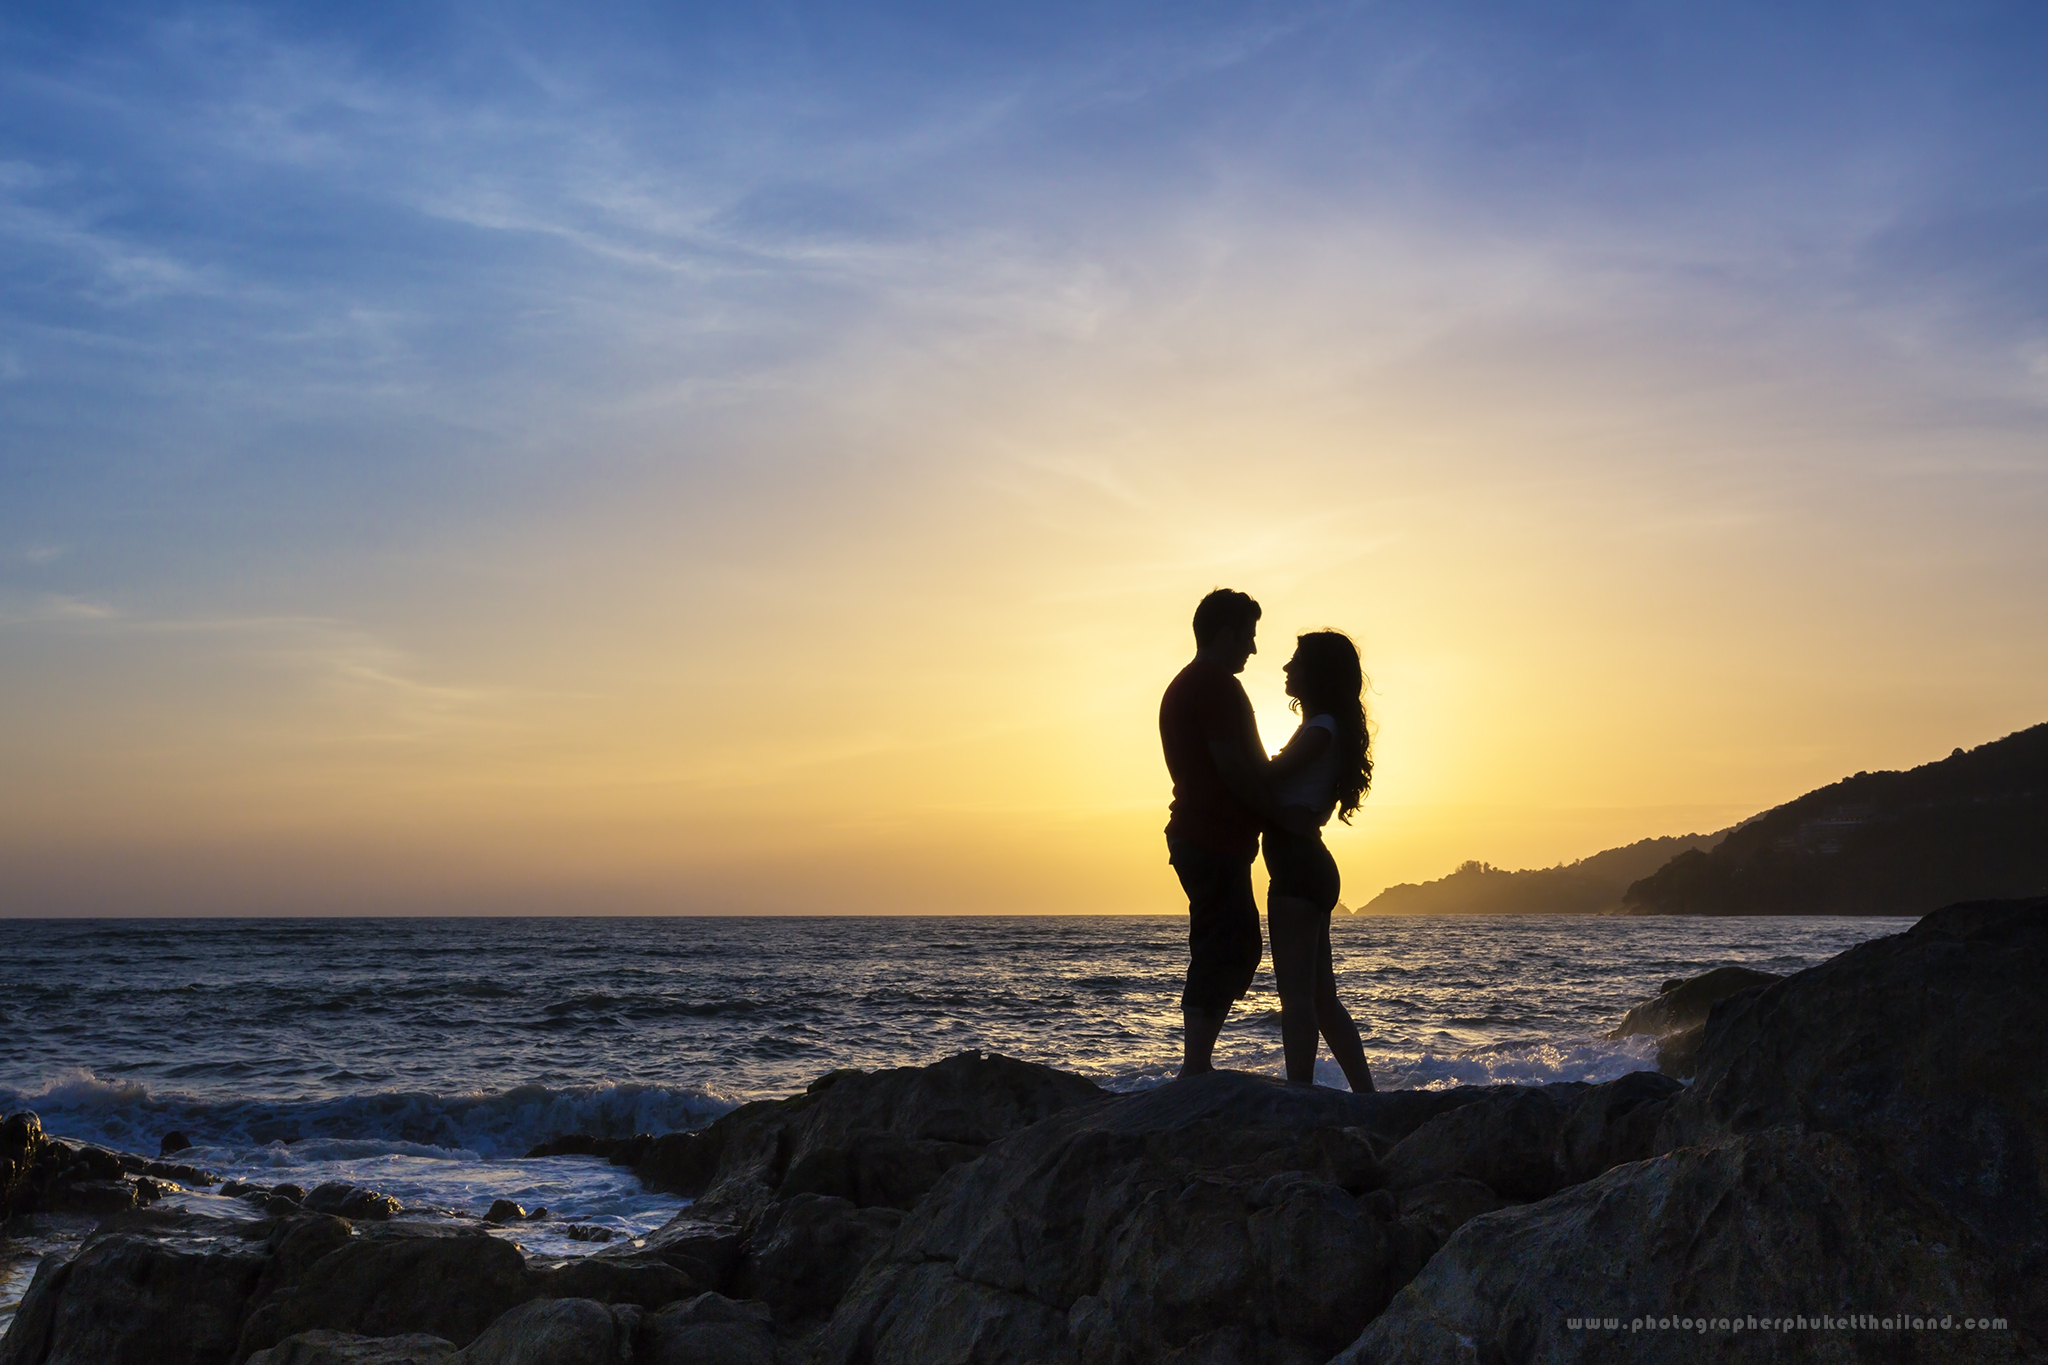 Engagement photoshoot at kalim beach Phuket